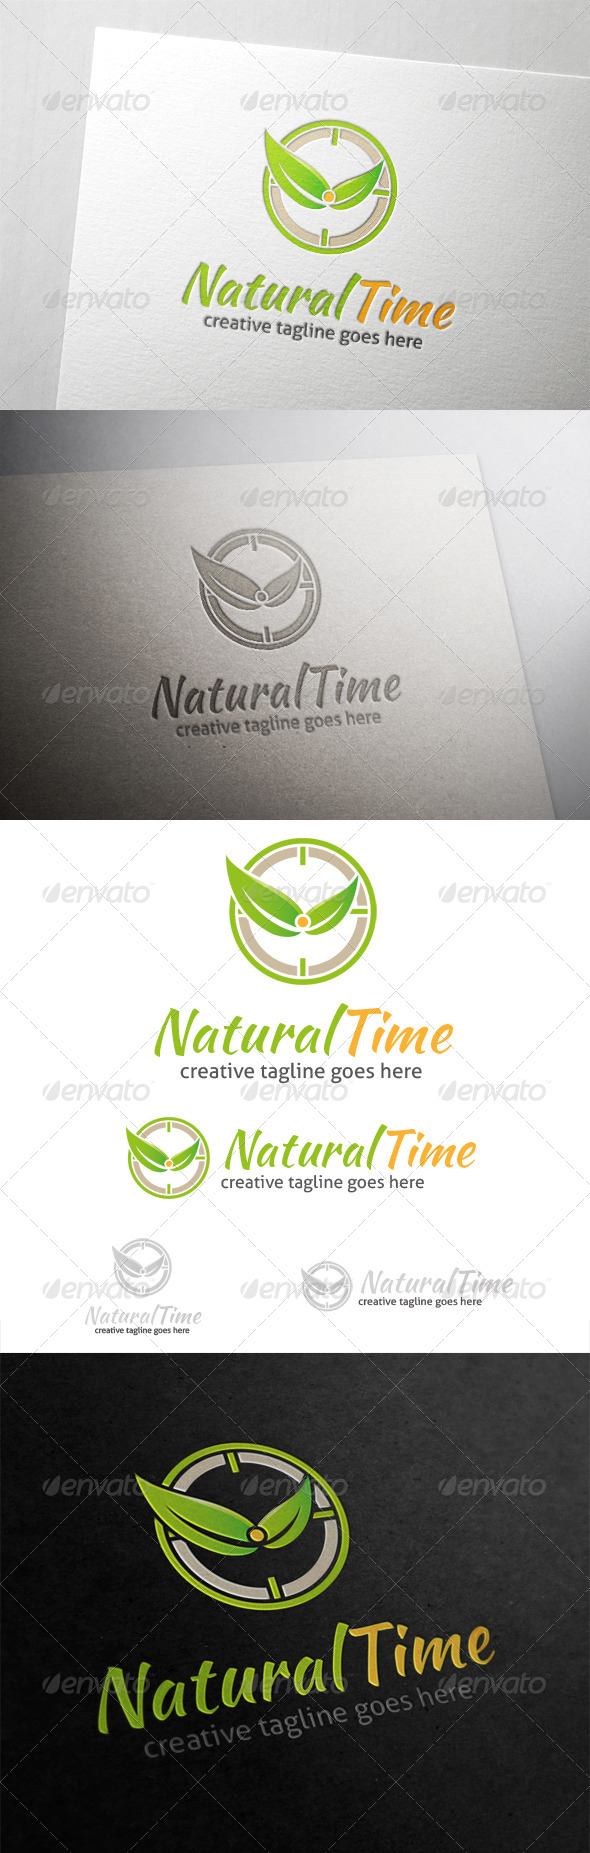 Natural Time Logo - Nature Logo Templates